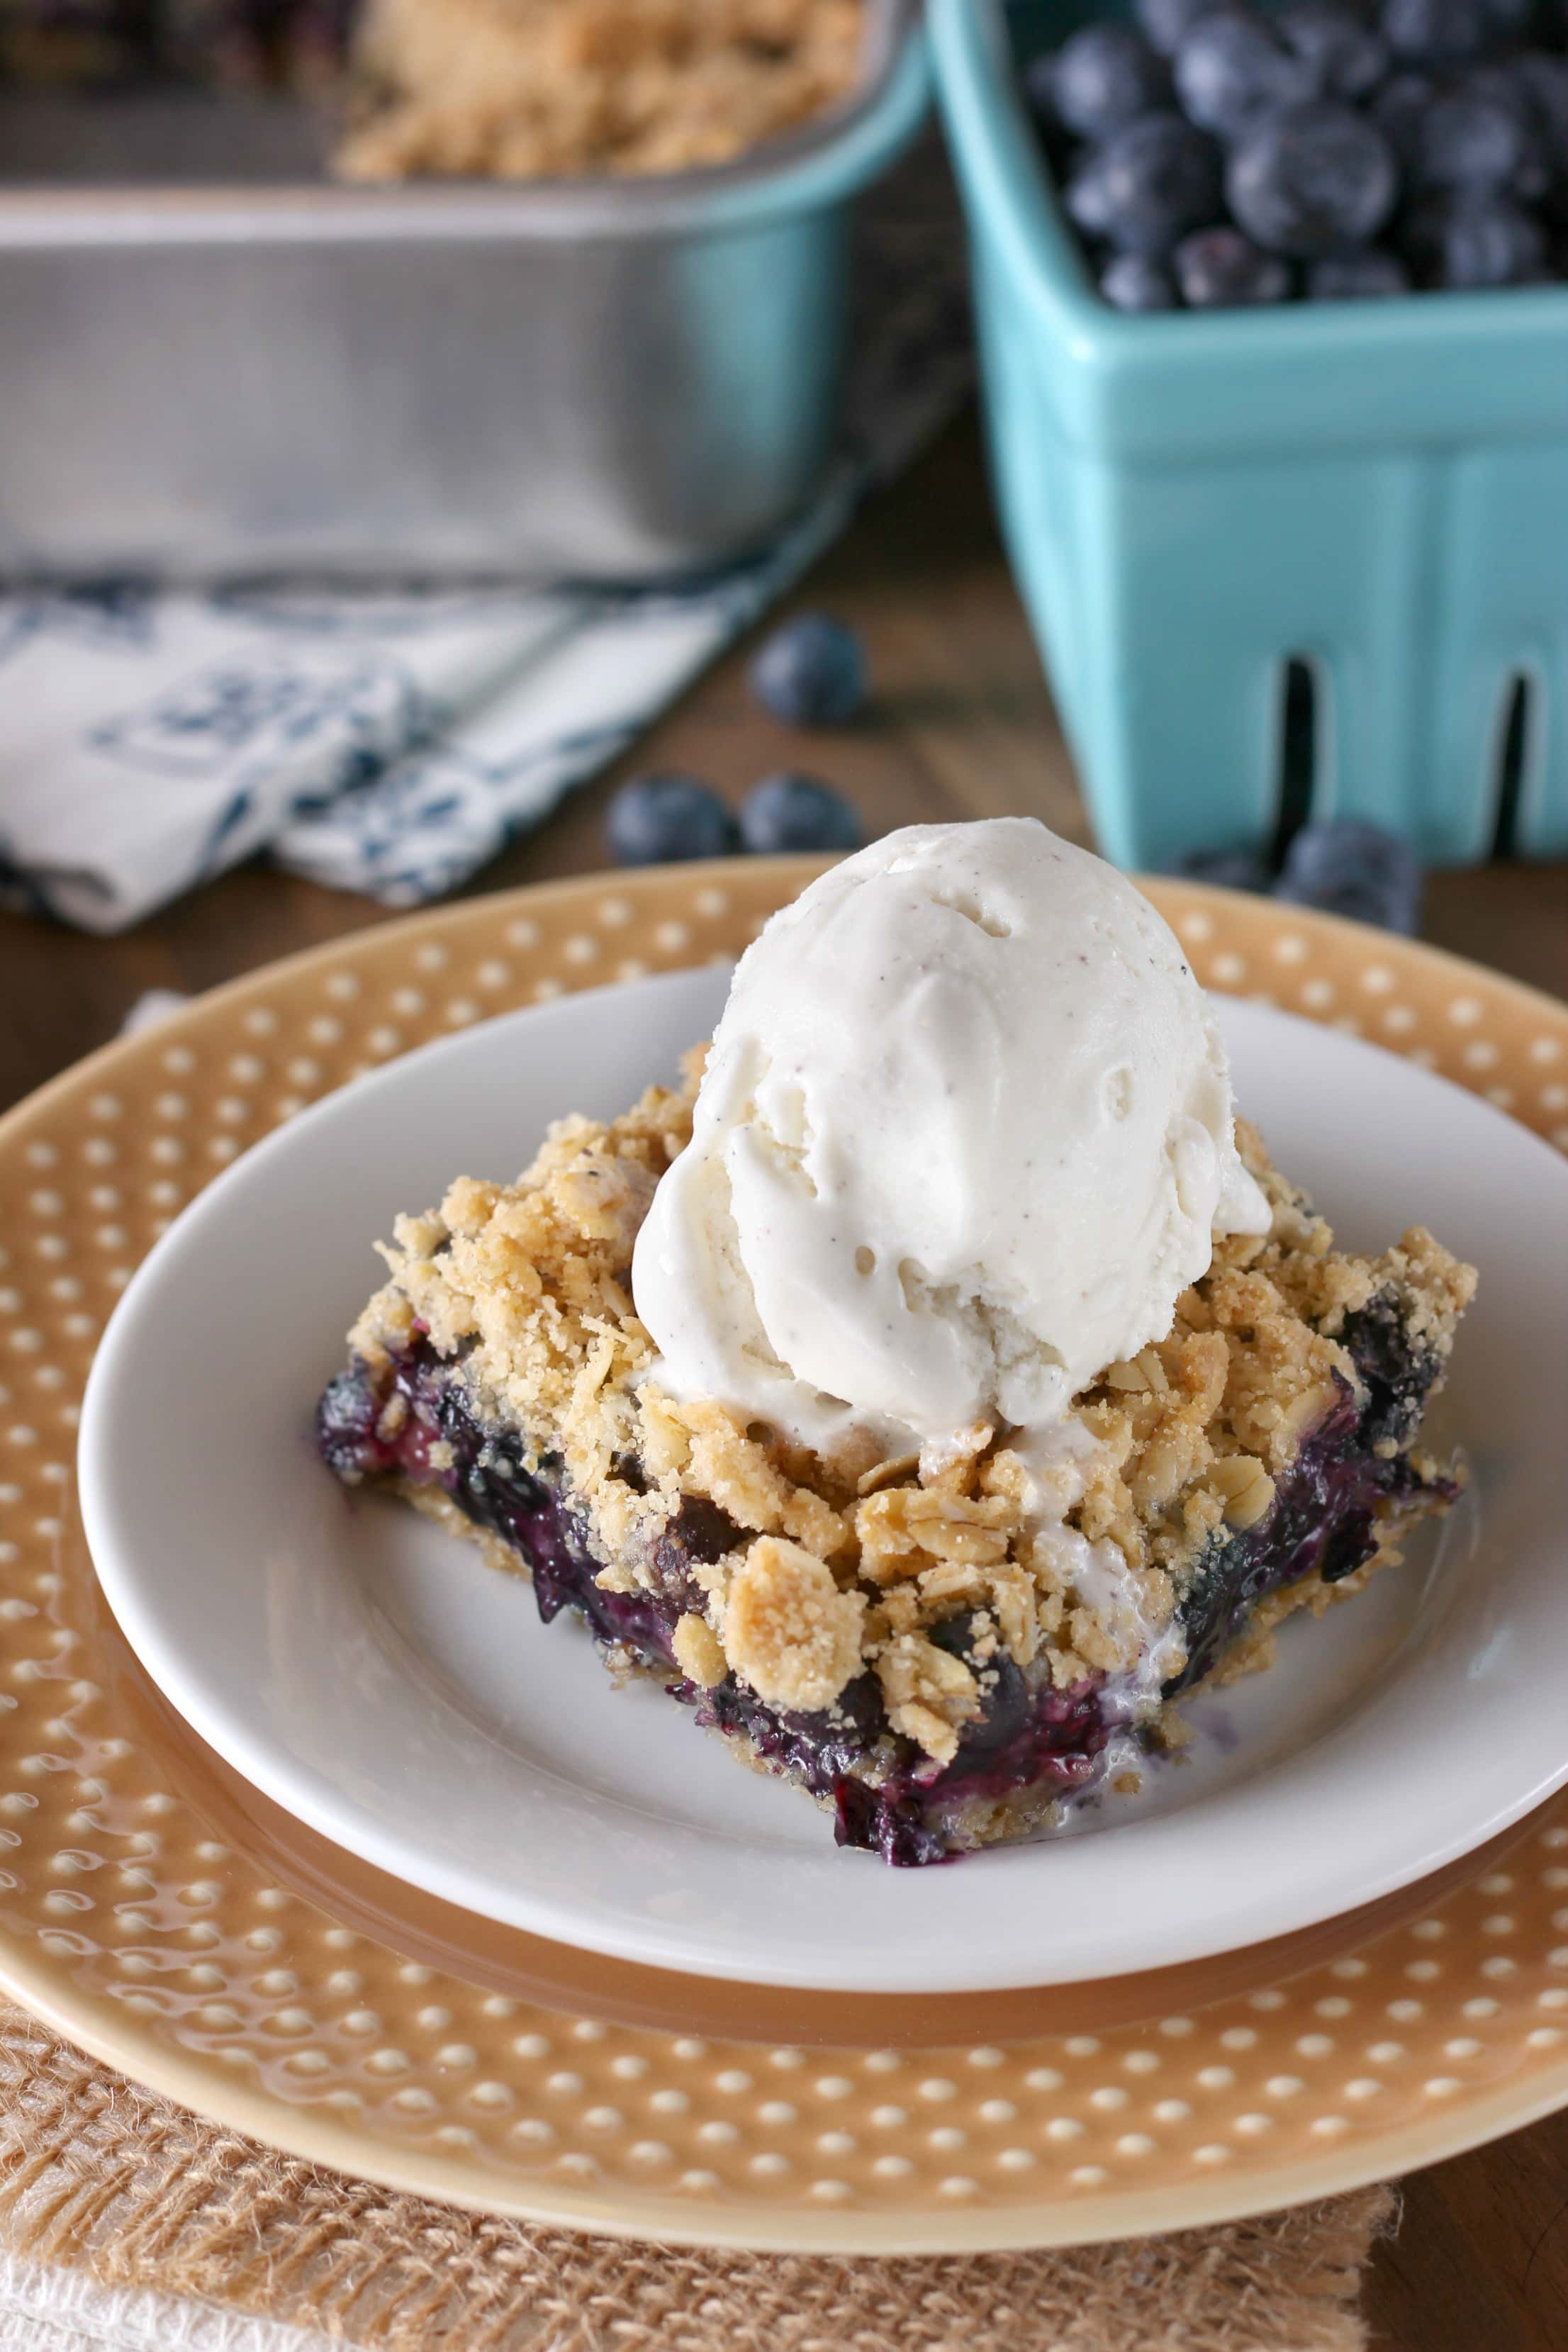 Blueberry Crisp Bars are an easy crumble bar recipe from A Kitchen Addiction